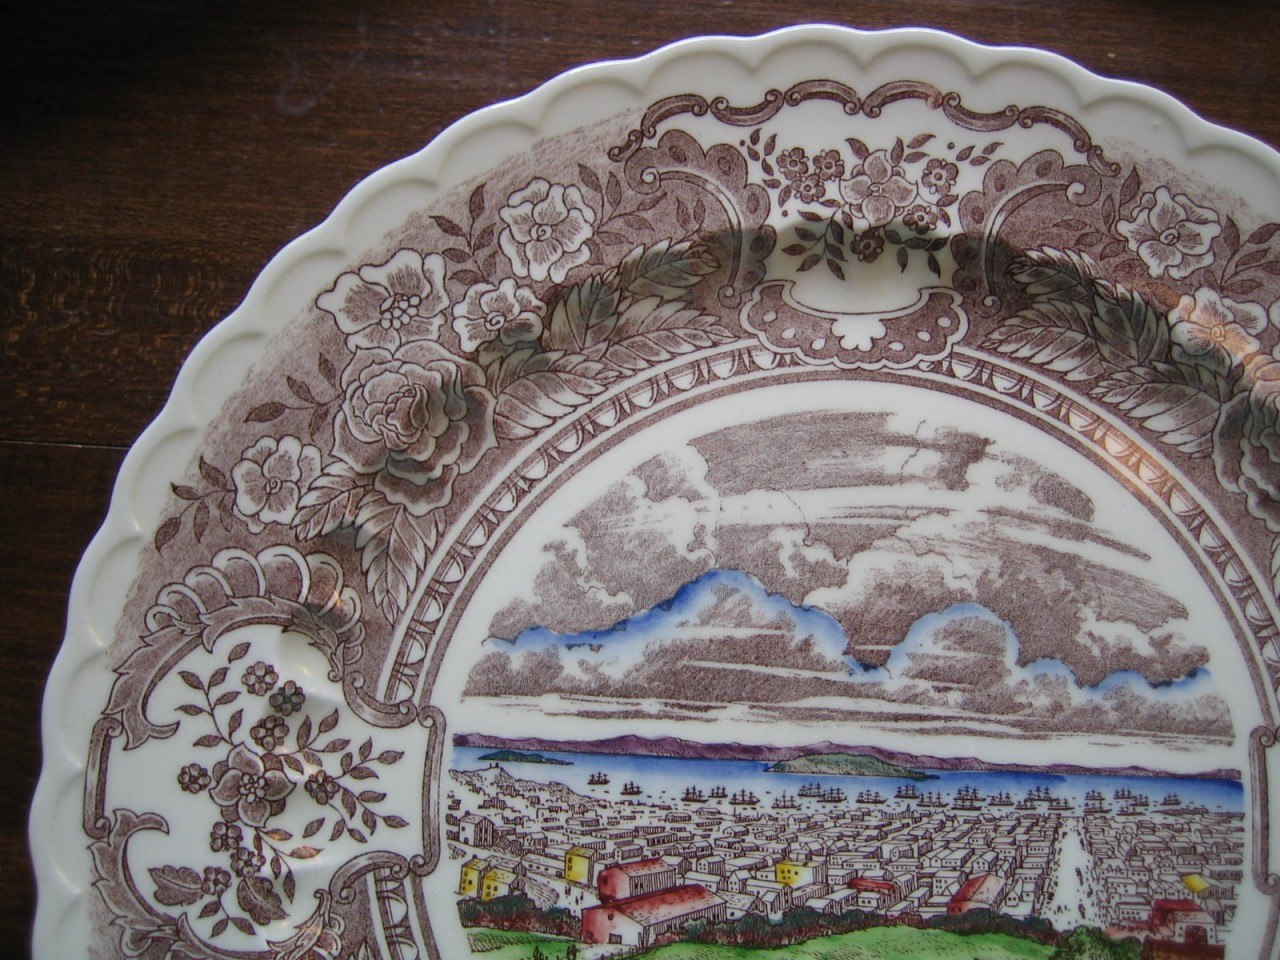 Decorative Platter - Vintage Brown Toile Roses Village Colored USA Huge Edge www.DecorativeDishes.net